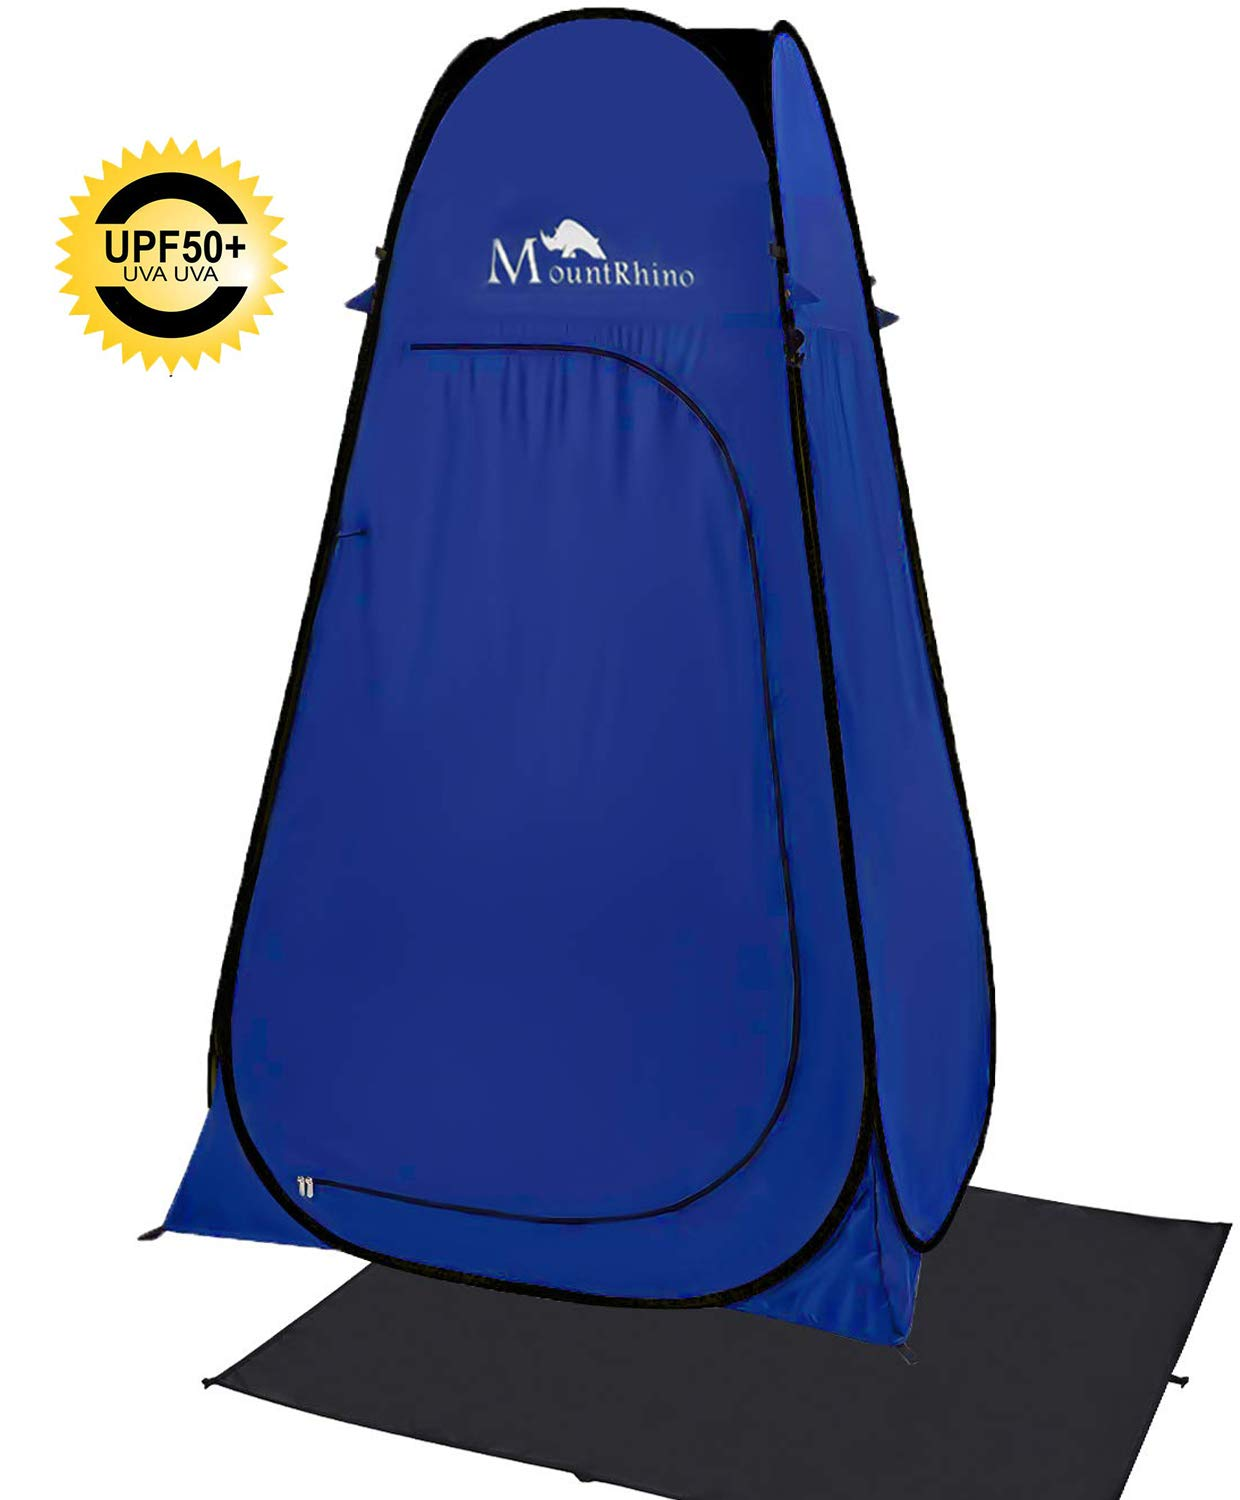 MountRhino 6.9ft Pop Up Changing Shower Tent,UV Protection Privacy Tent Shelter,Portable Shower Toilet Bathroom for Camping Beach Dressing Cabana with rainfly and Ground Sheet (Black) by MountRhino